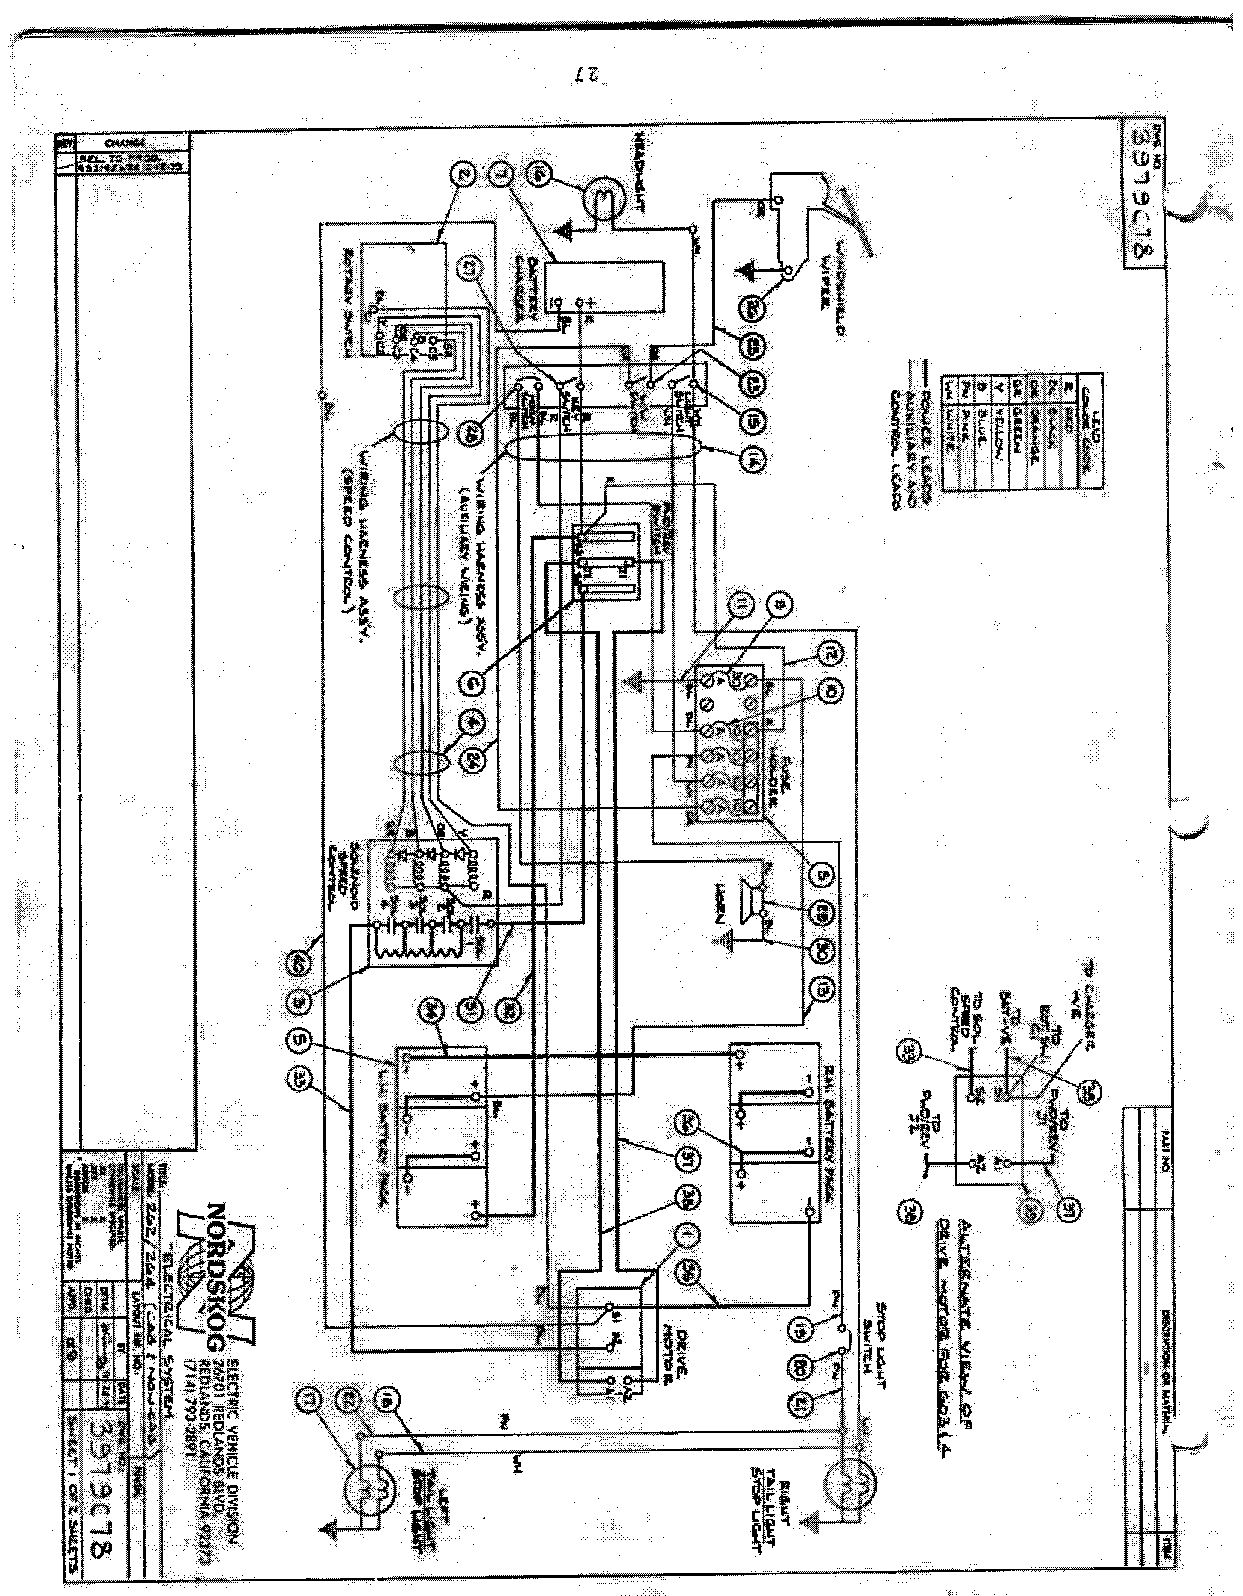 Nordskog262_264 vintagegolfcartparts com westinghouse golf cart wiring diagram at panicattacktreatment.co